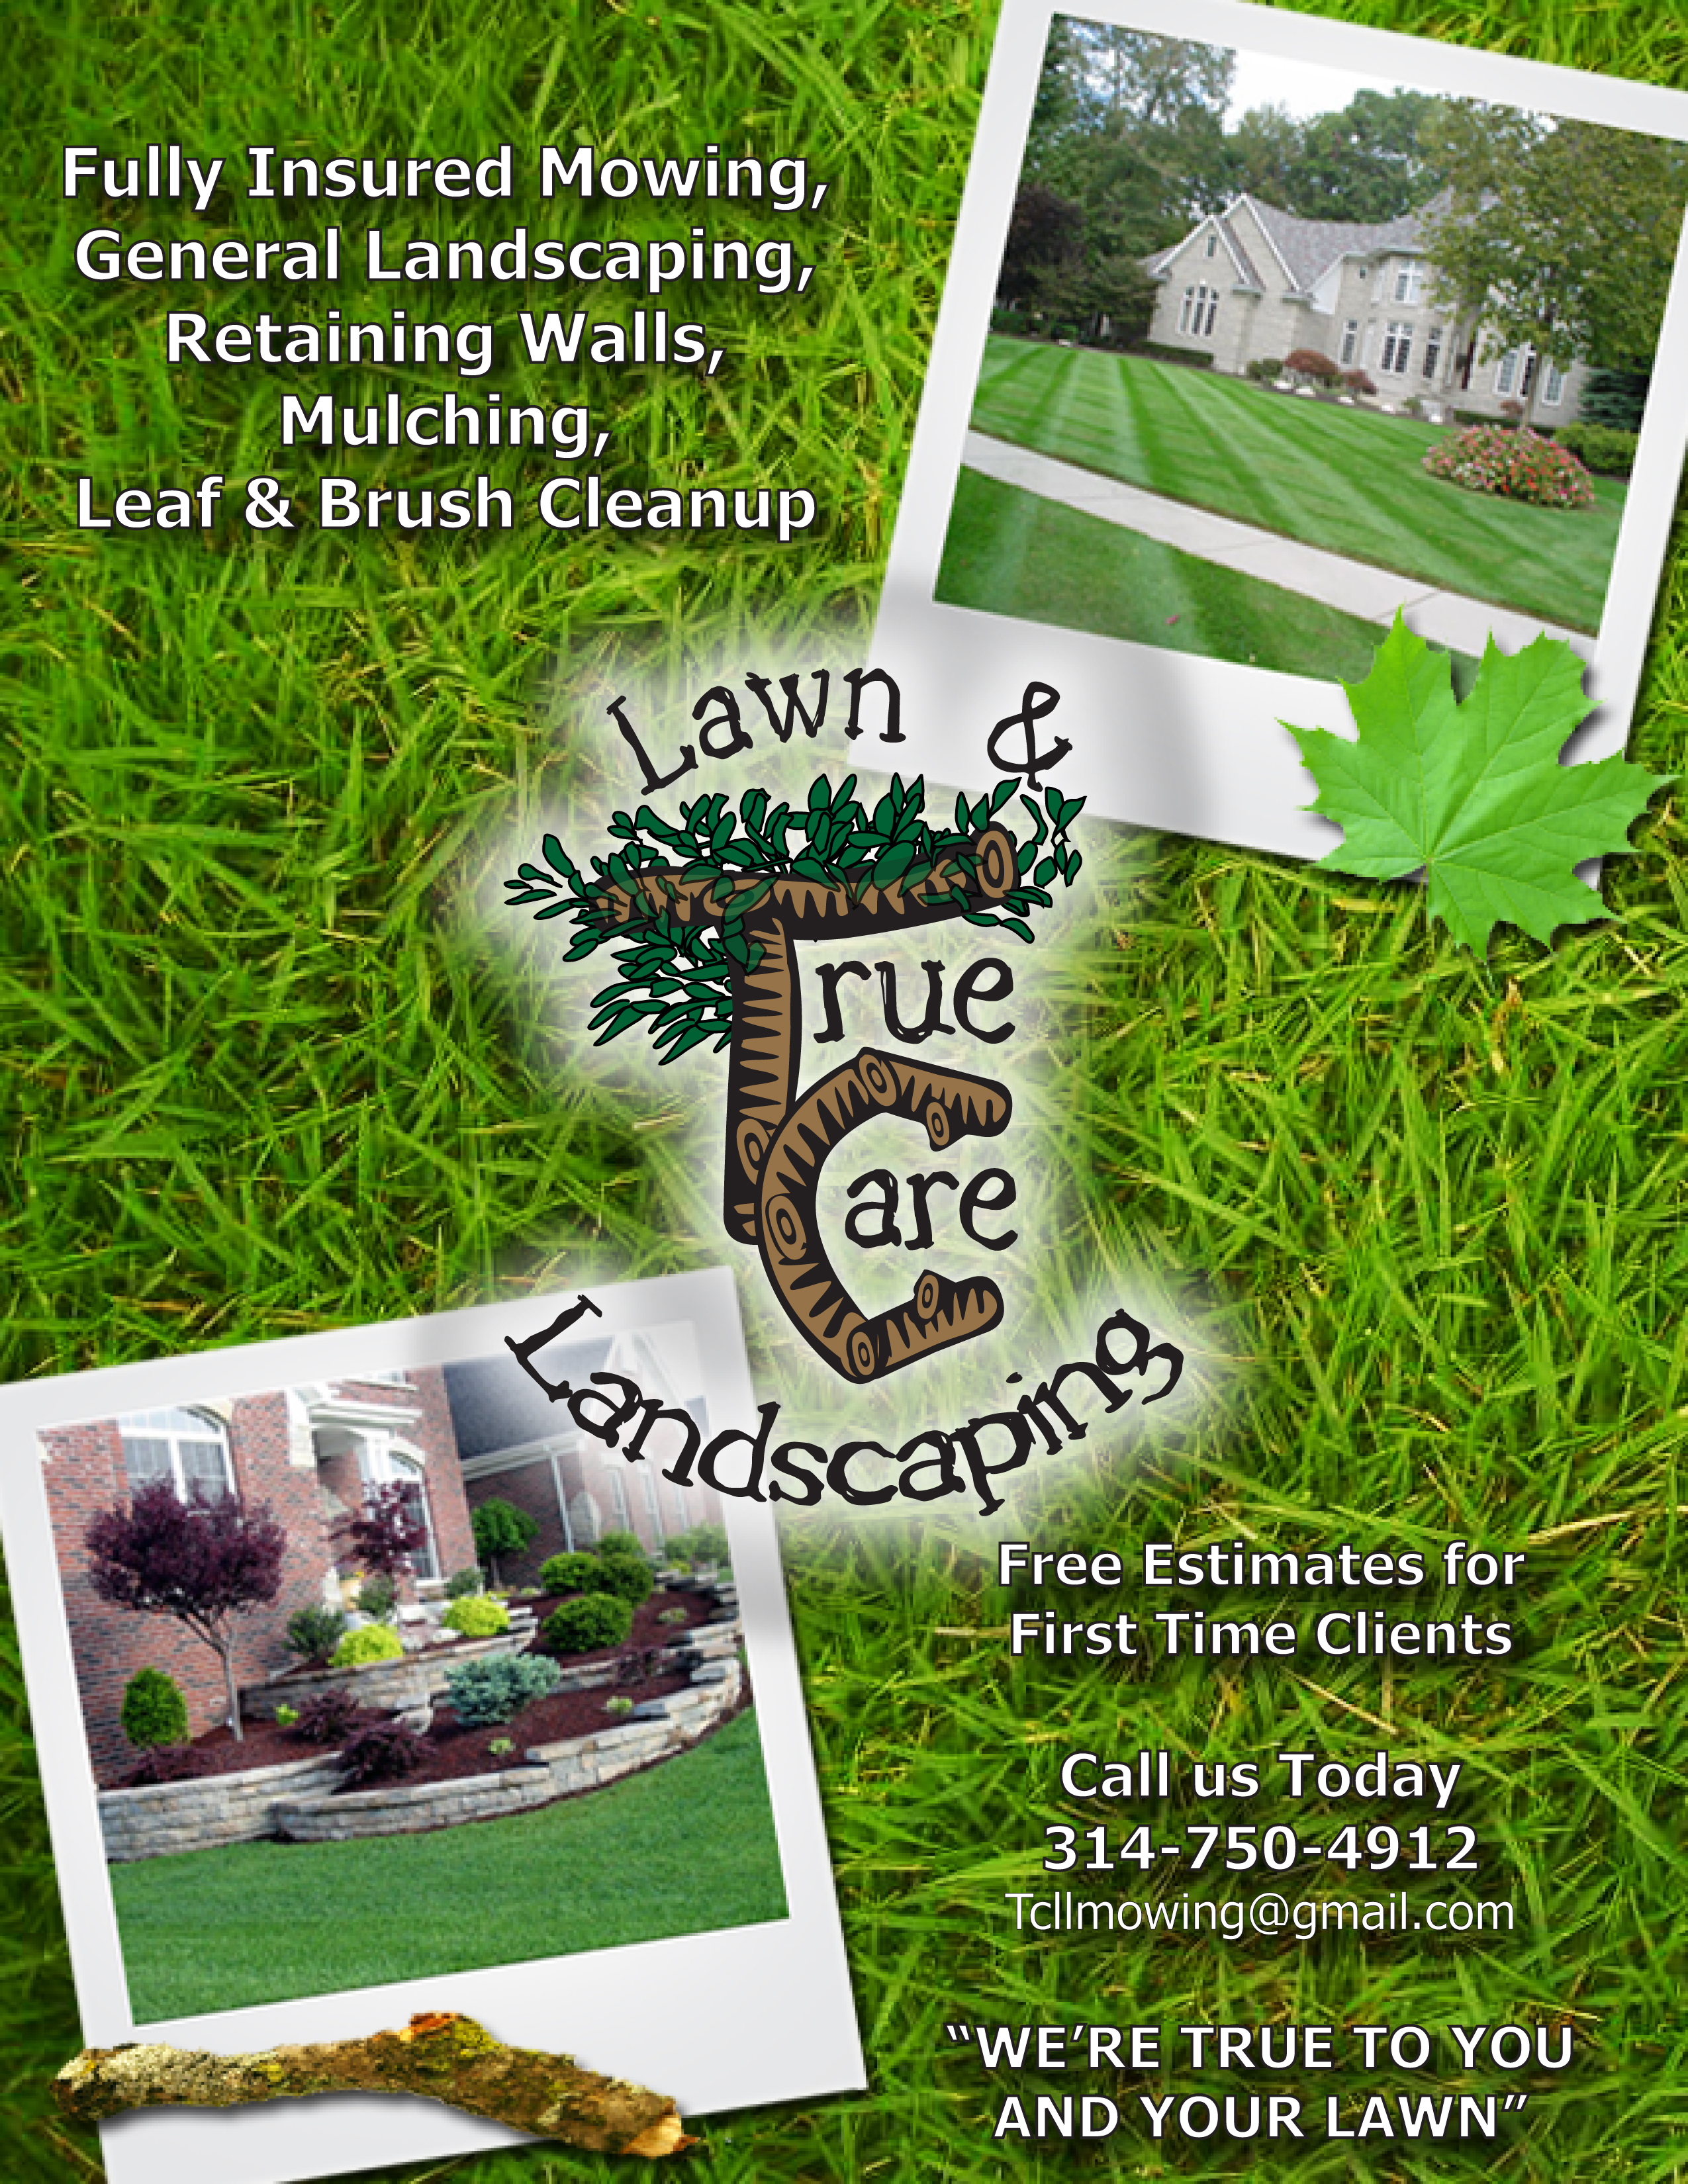 portfolio dave woods true care lawn landscape flyer